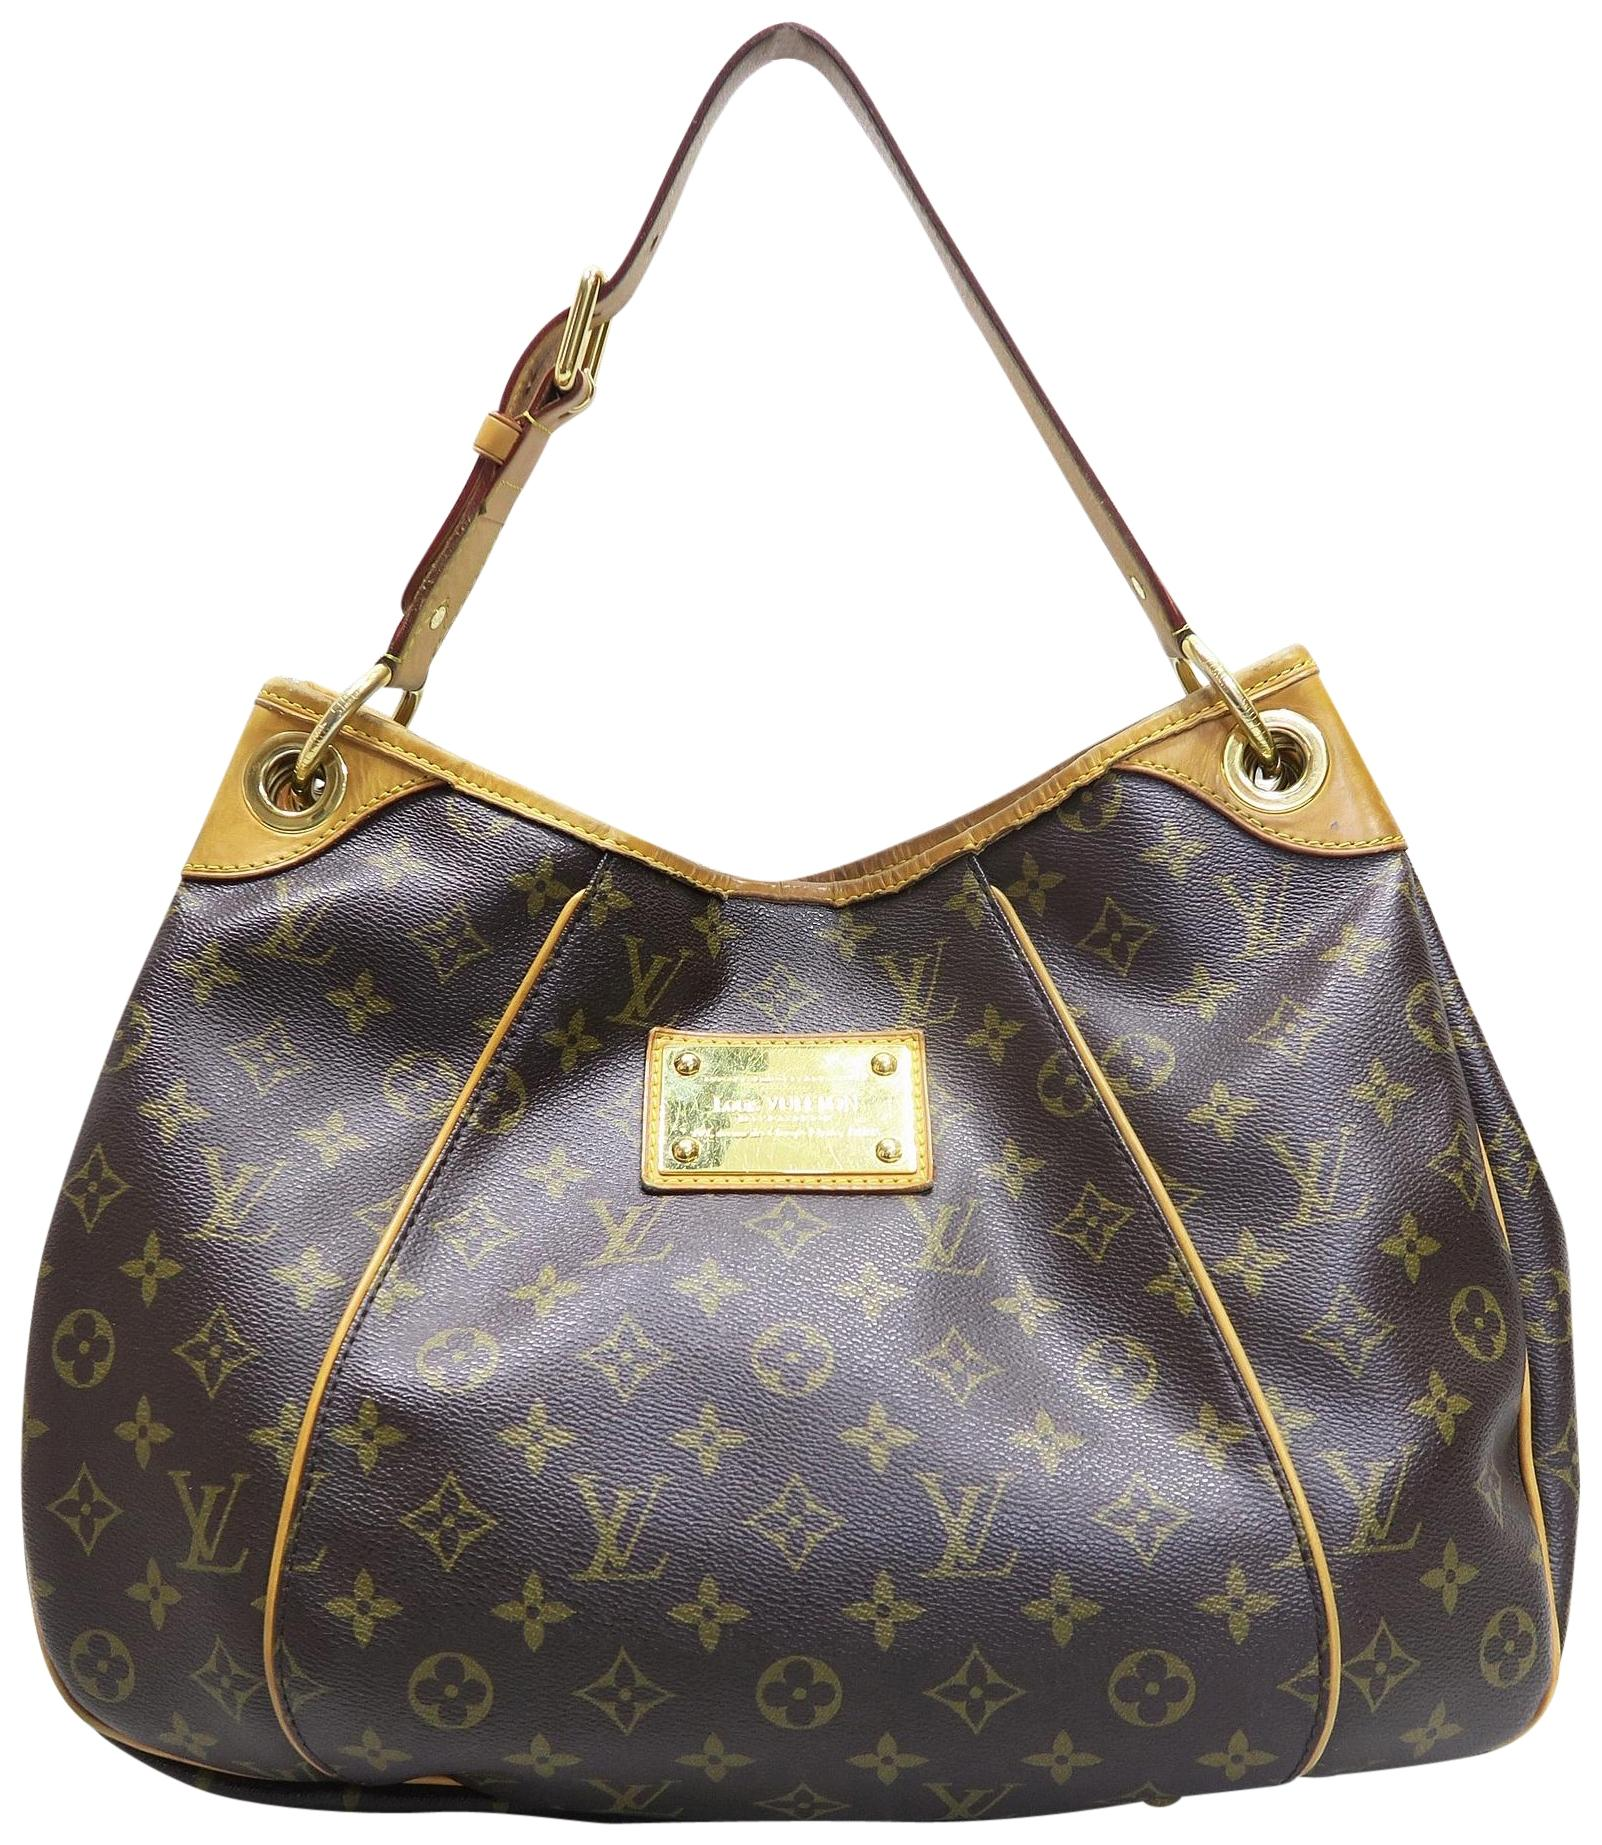 64a4f07b27bd Louis Vuitton Galliera Pm Monogram Canvas Shoulder Bag dKlhPmaG6H ...